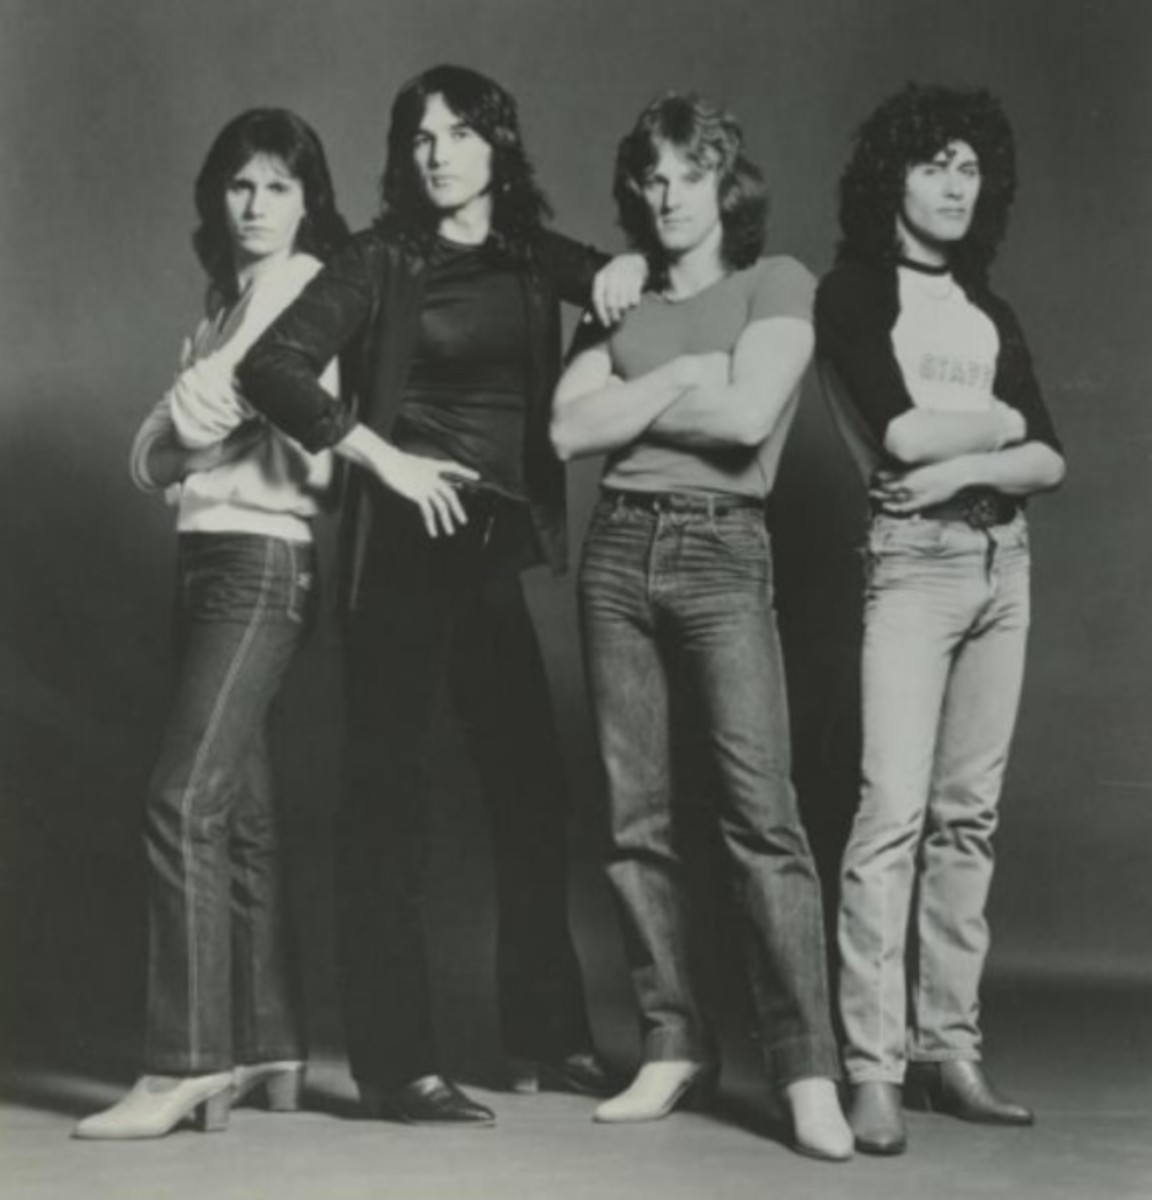 Touch, L to R: Craig Brooks, Mark Mangold, Glenn Kitchcart, and Doug Howard, 1980 publicity photo